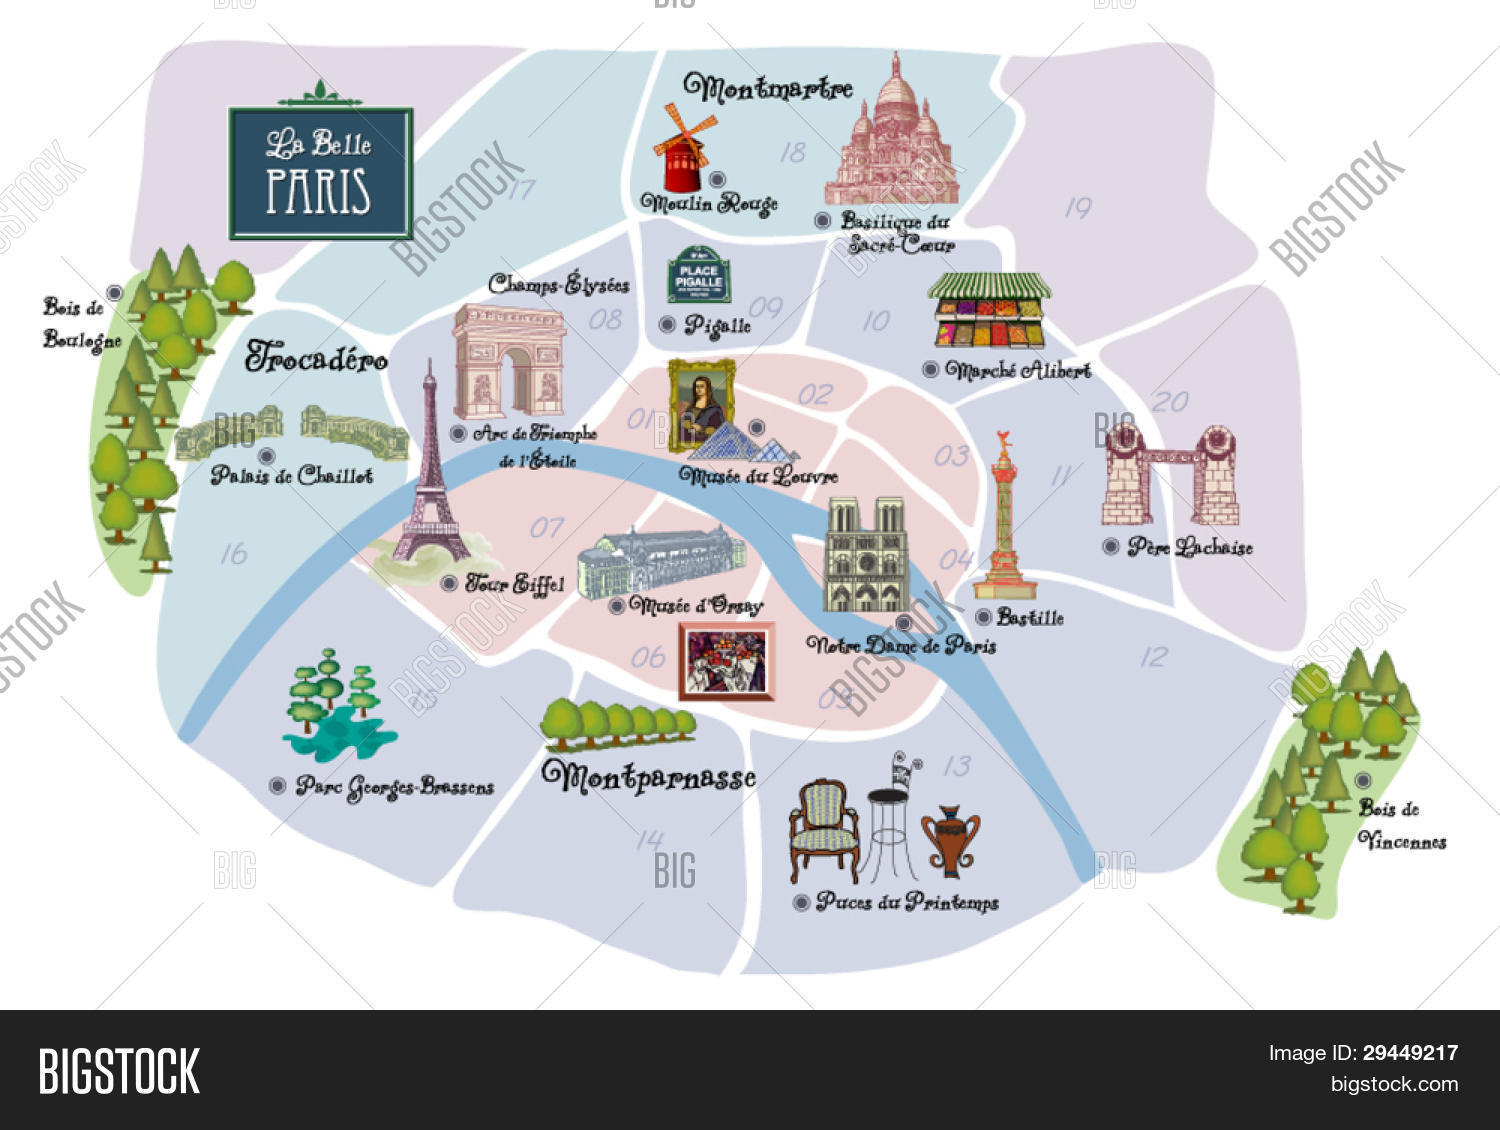 Picturesque Paris Map Famous Vector Photo Bigstock - Paris map monuments